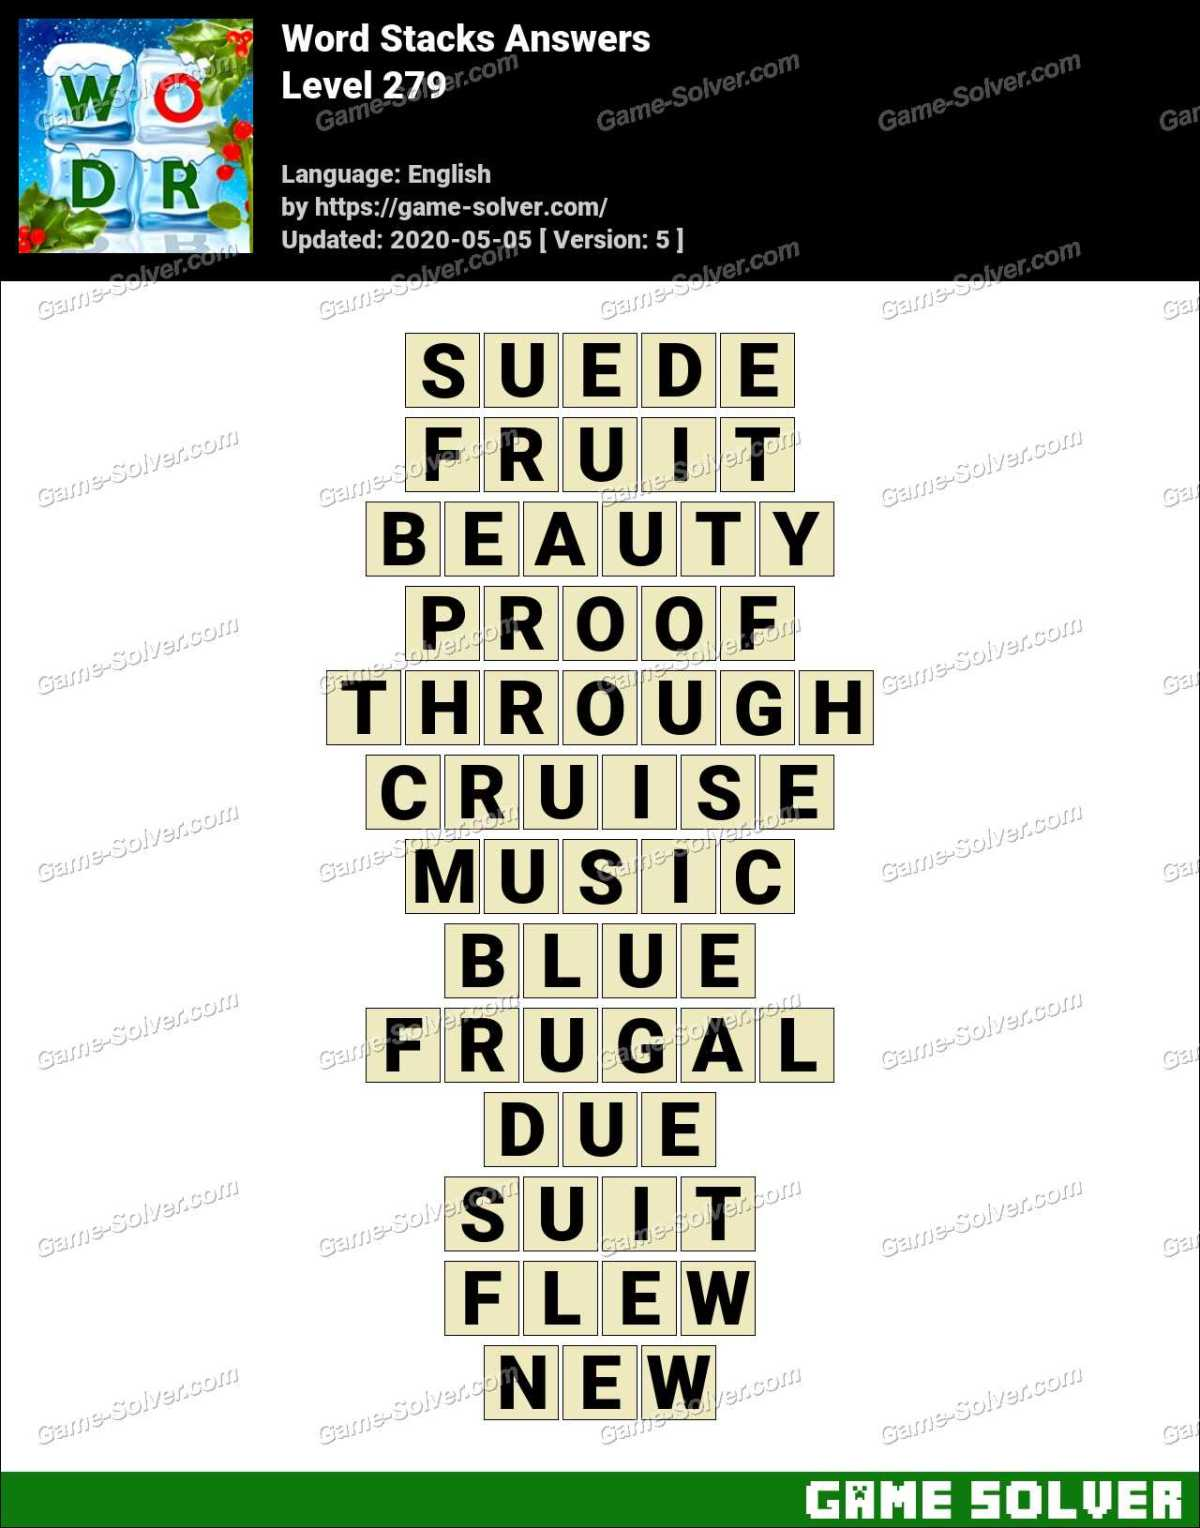 Word Stacks Level 279 Answers